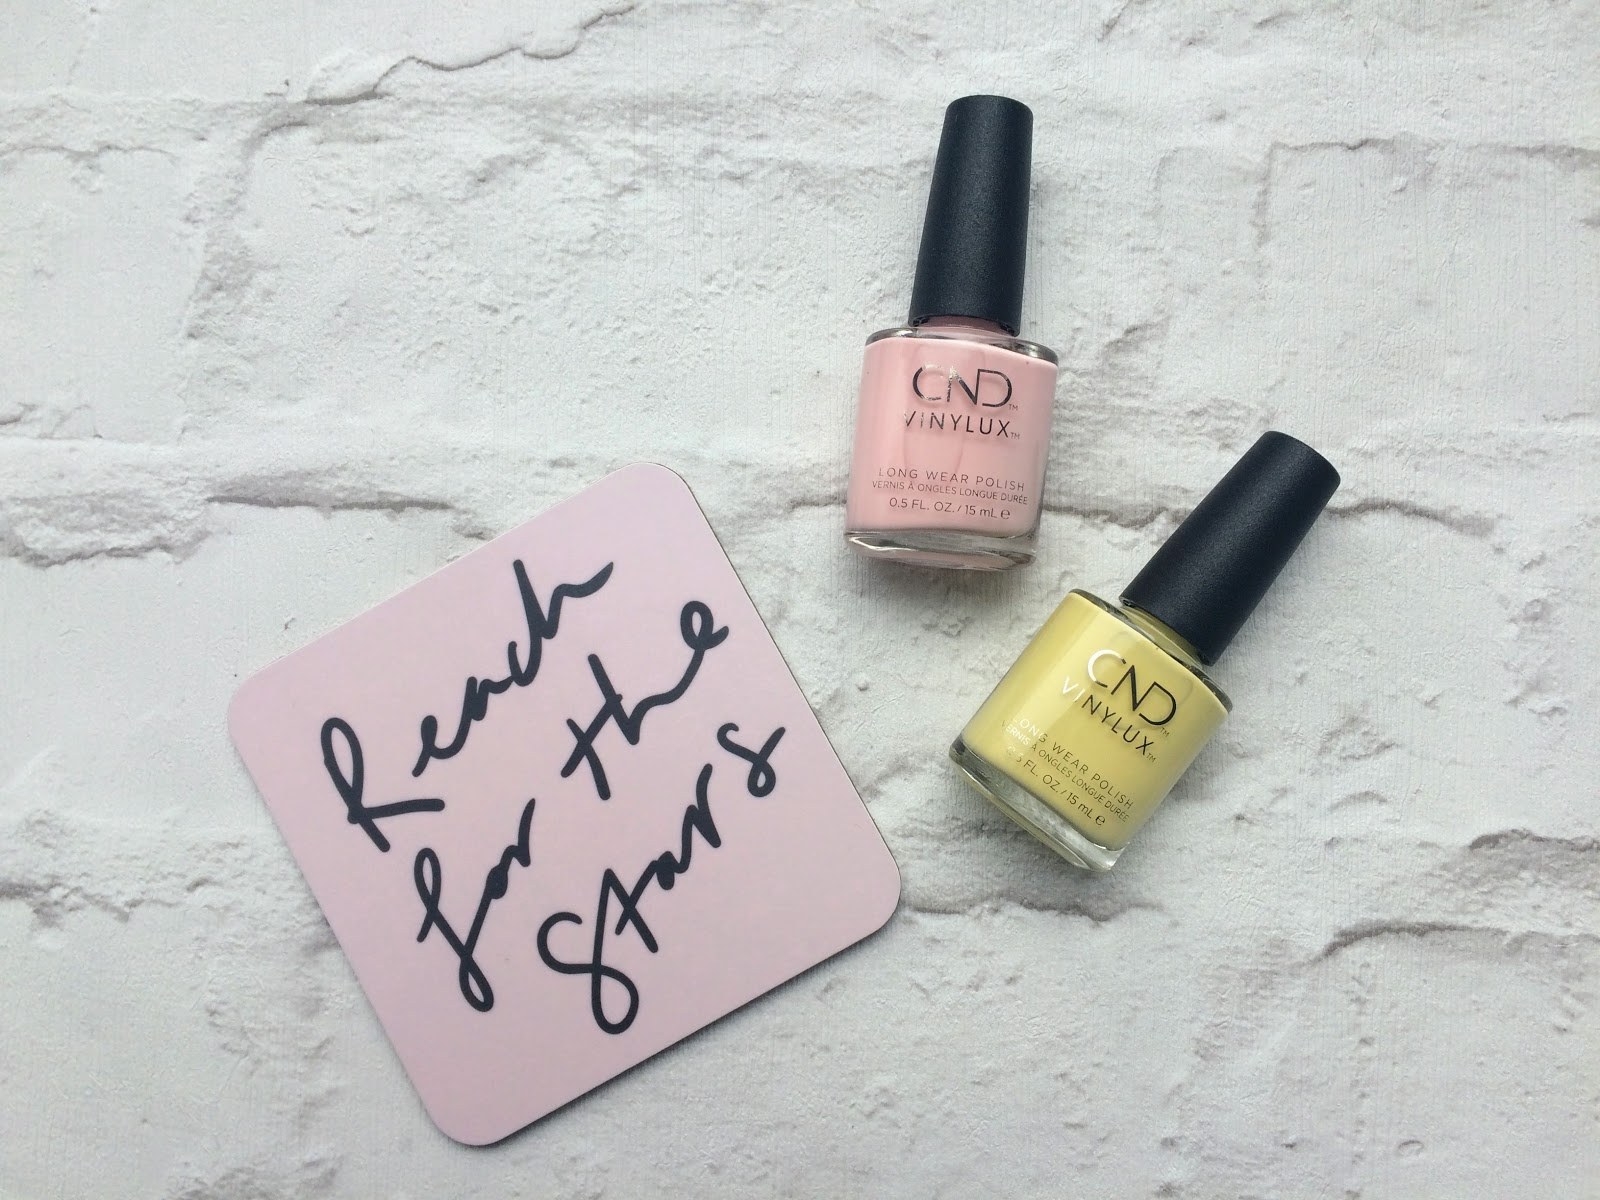 CND Vinylux Candied and Jellied Reach for the starts Old English Company coaste